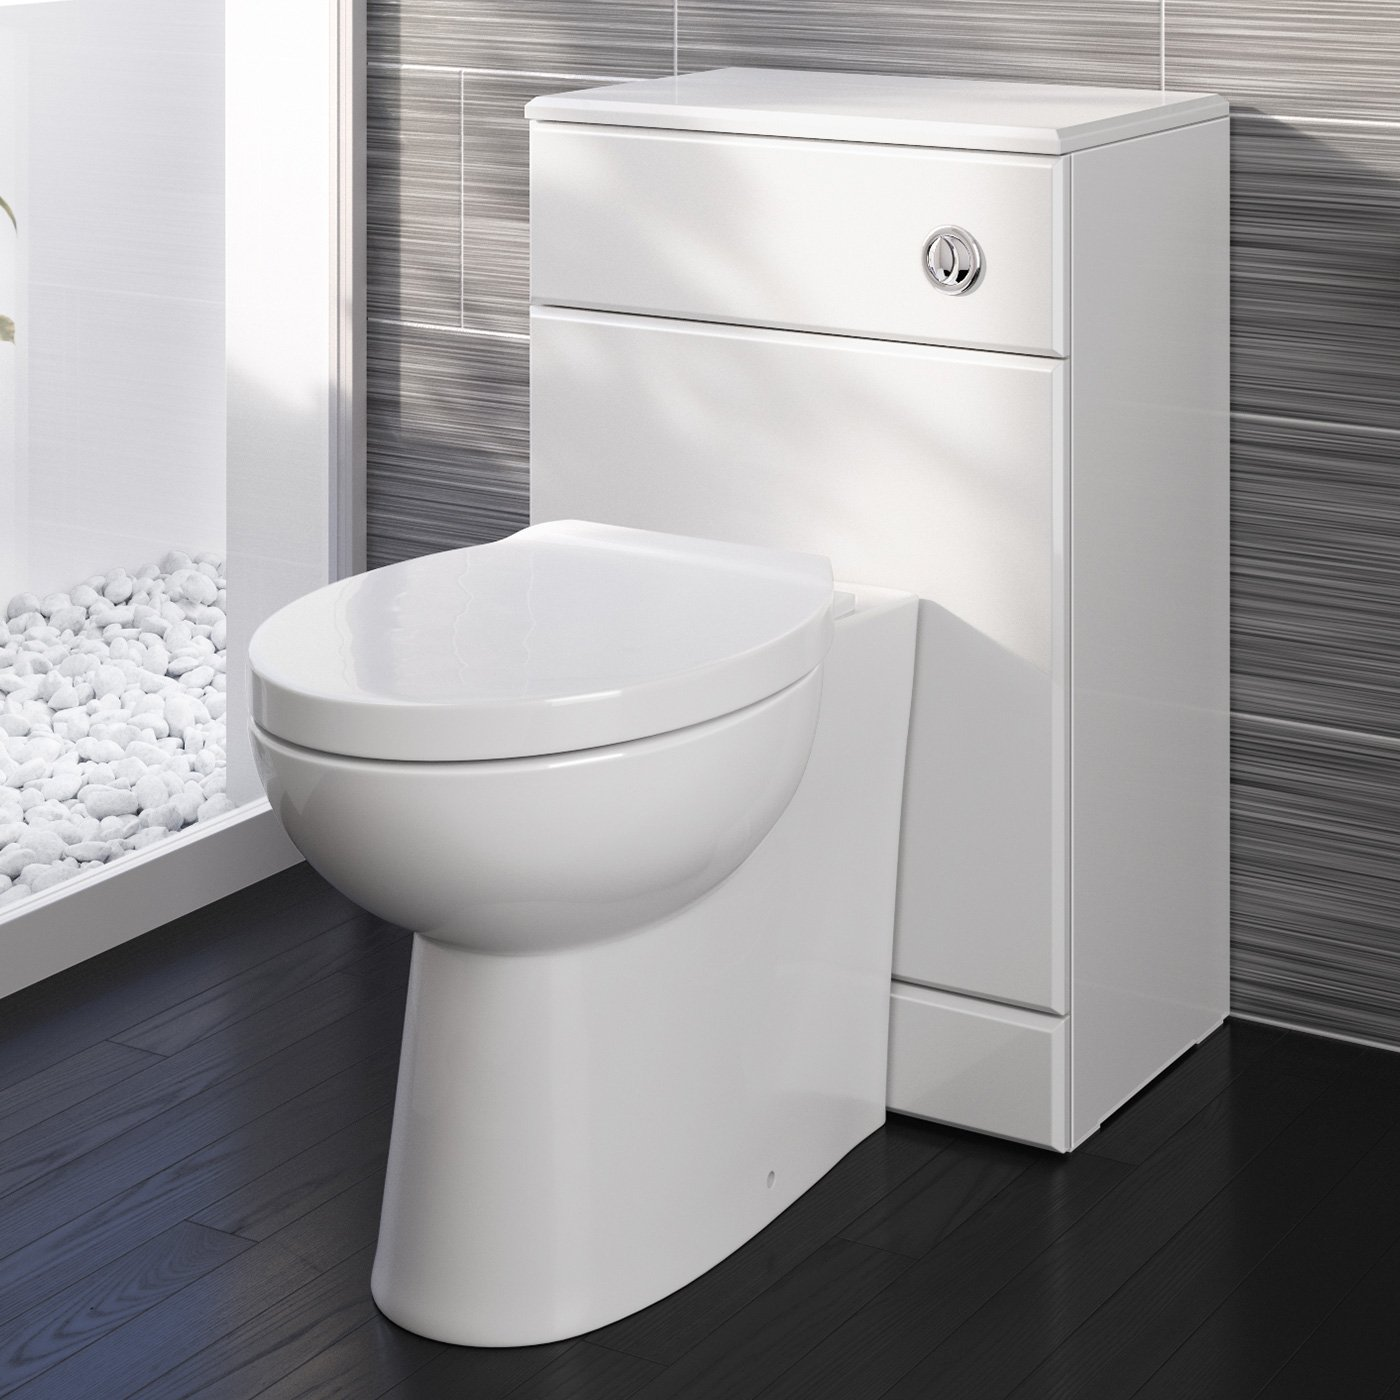 iBathUK Modern Back To Wall Toilet with Soft Close Seat White Gloss WC Furniture Unit BS2880